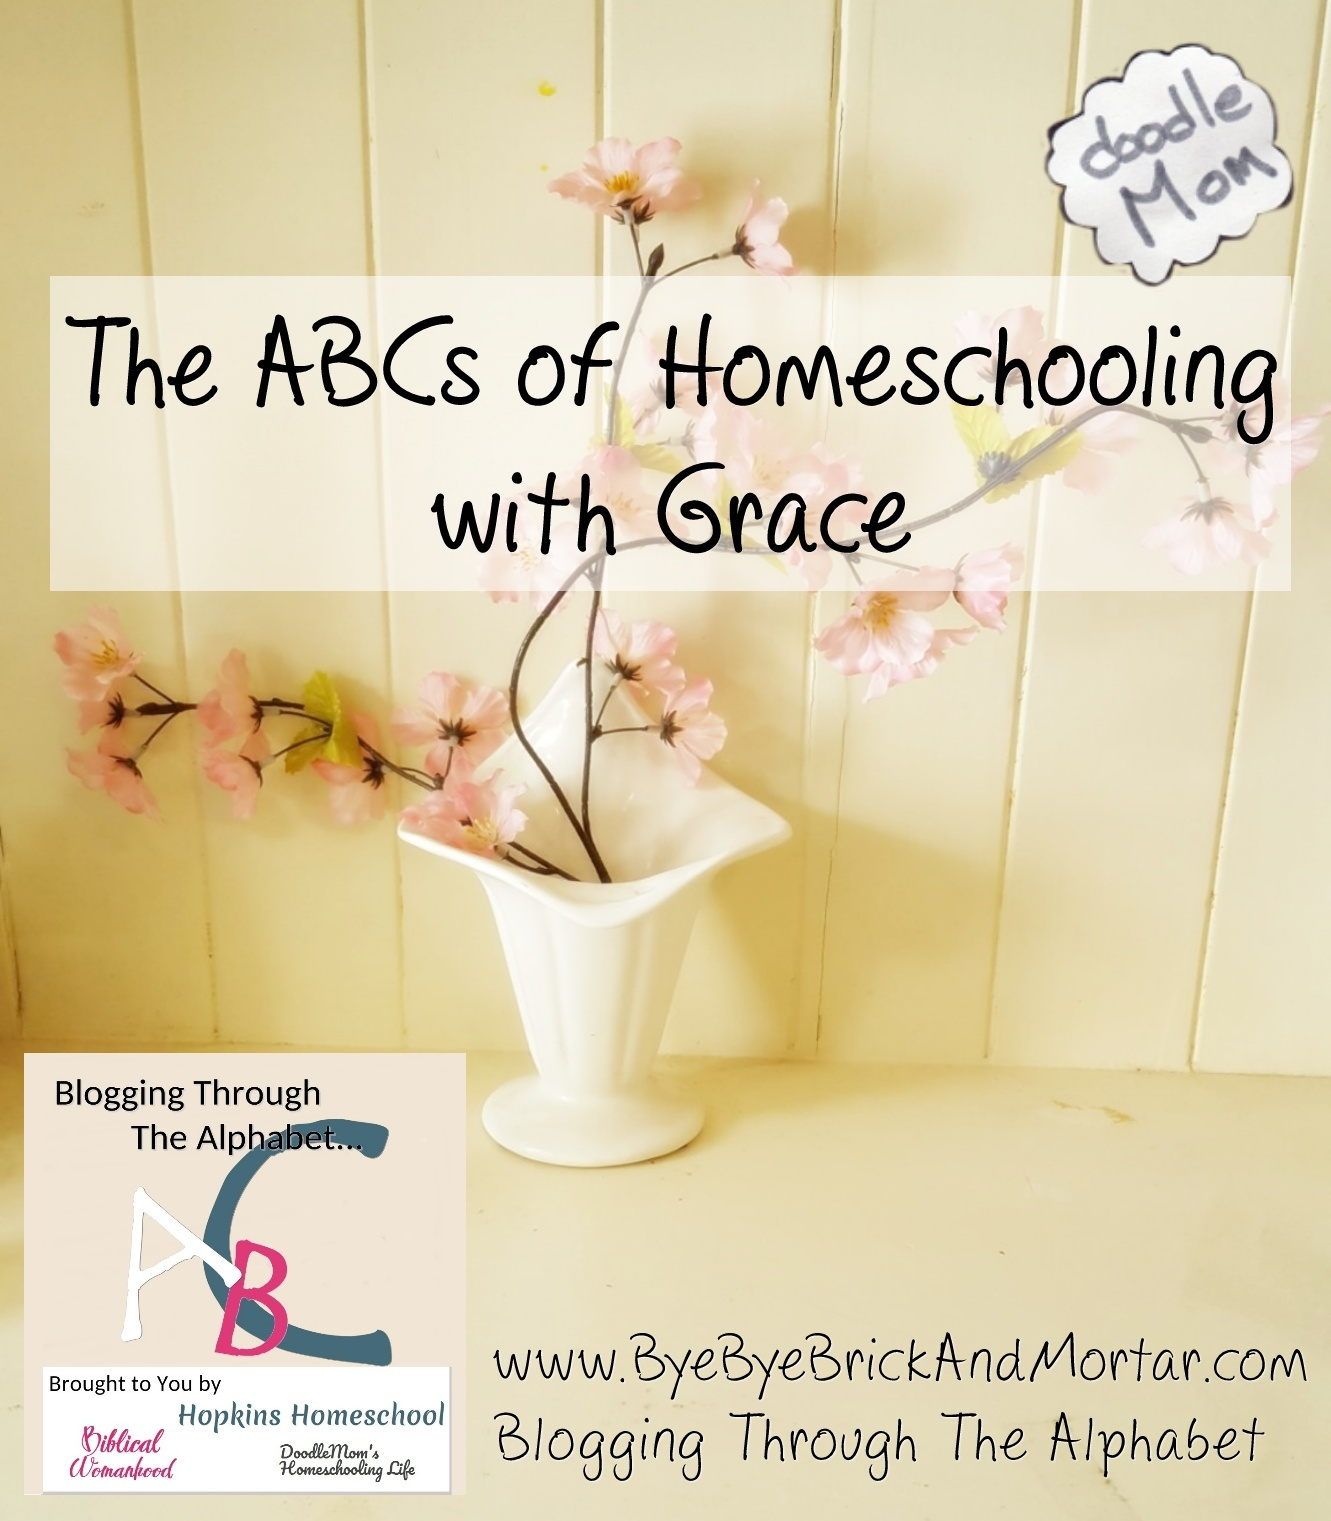 The ABCs of Homeschooling With Grace